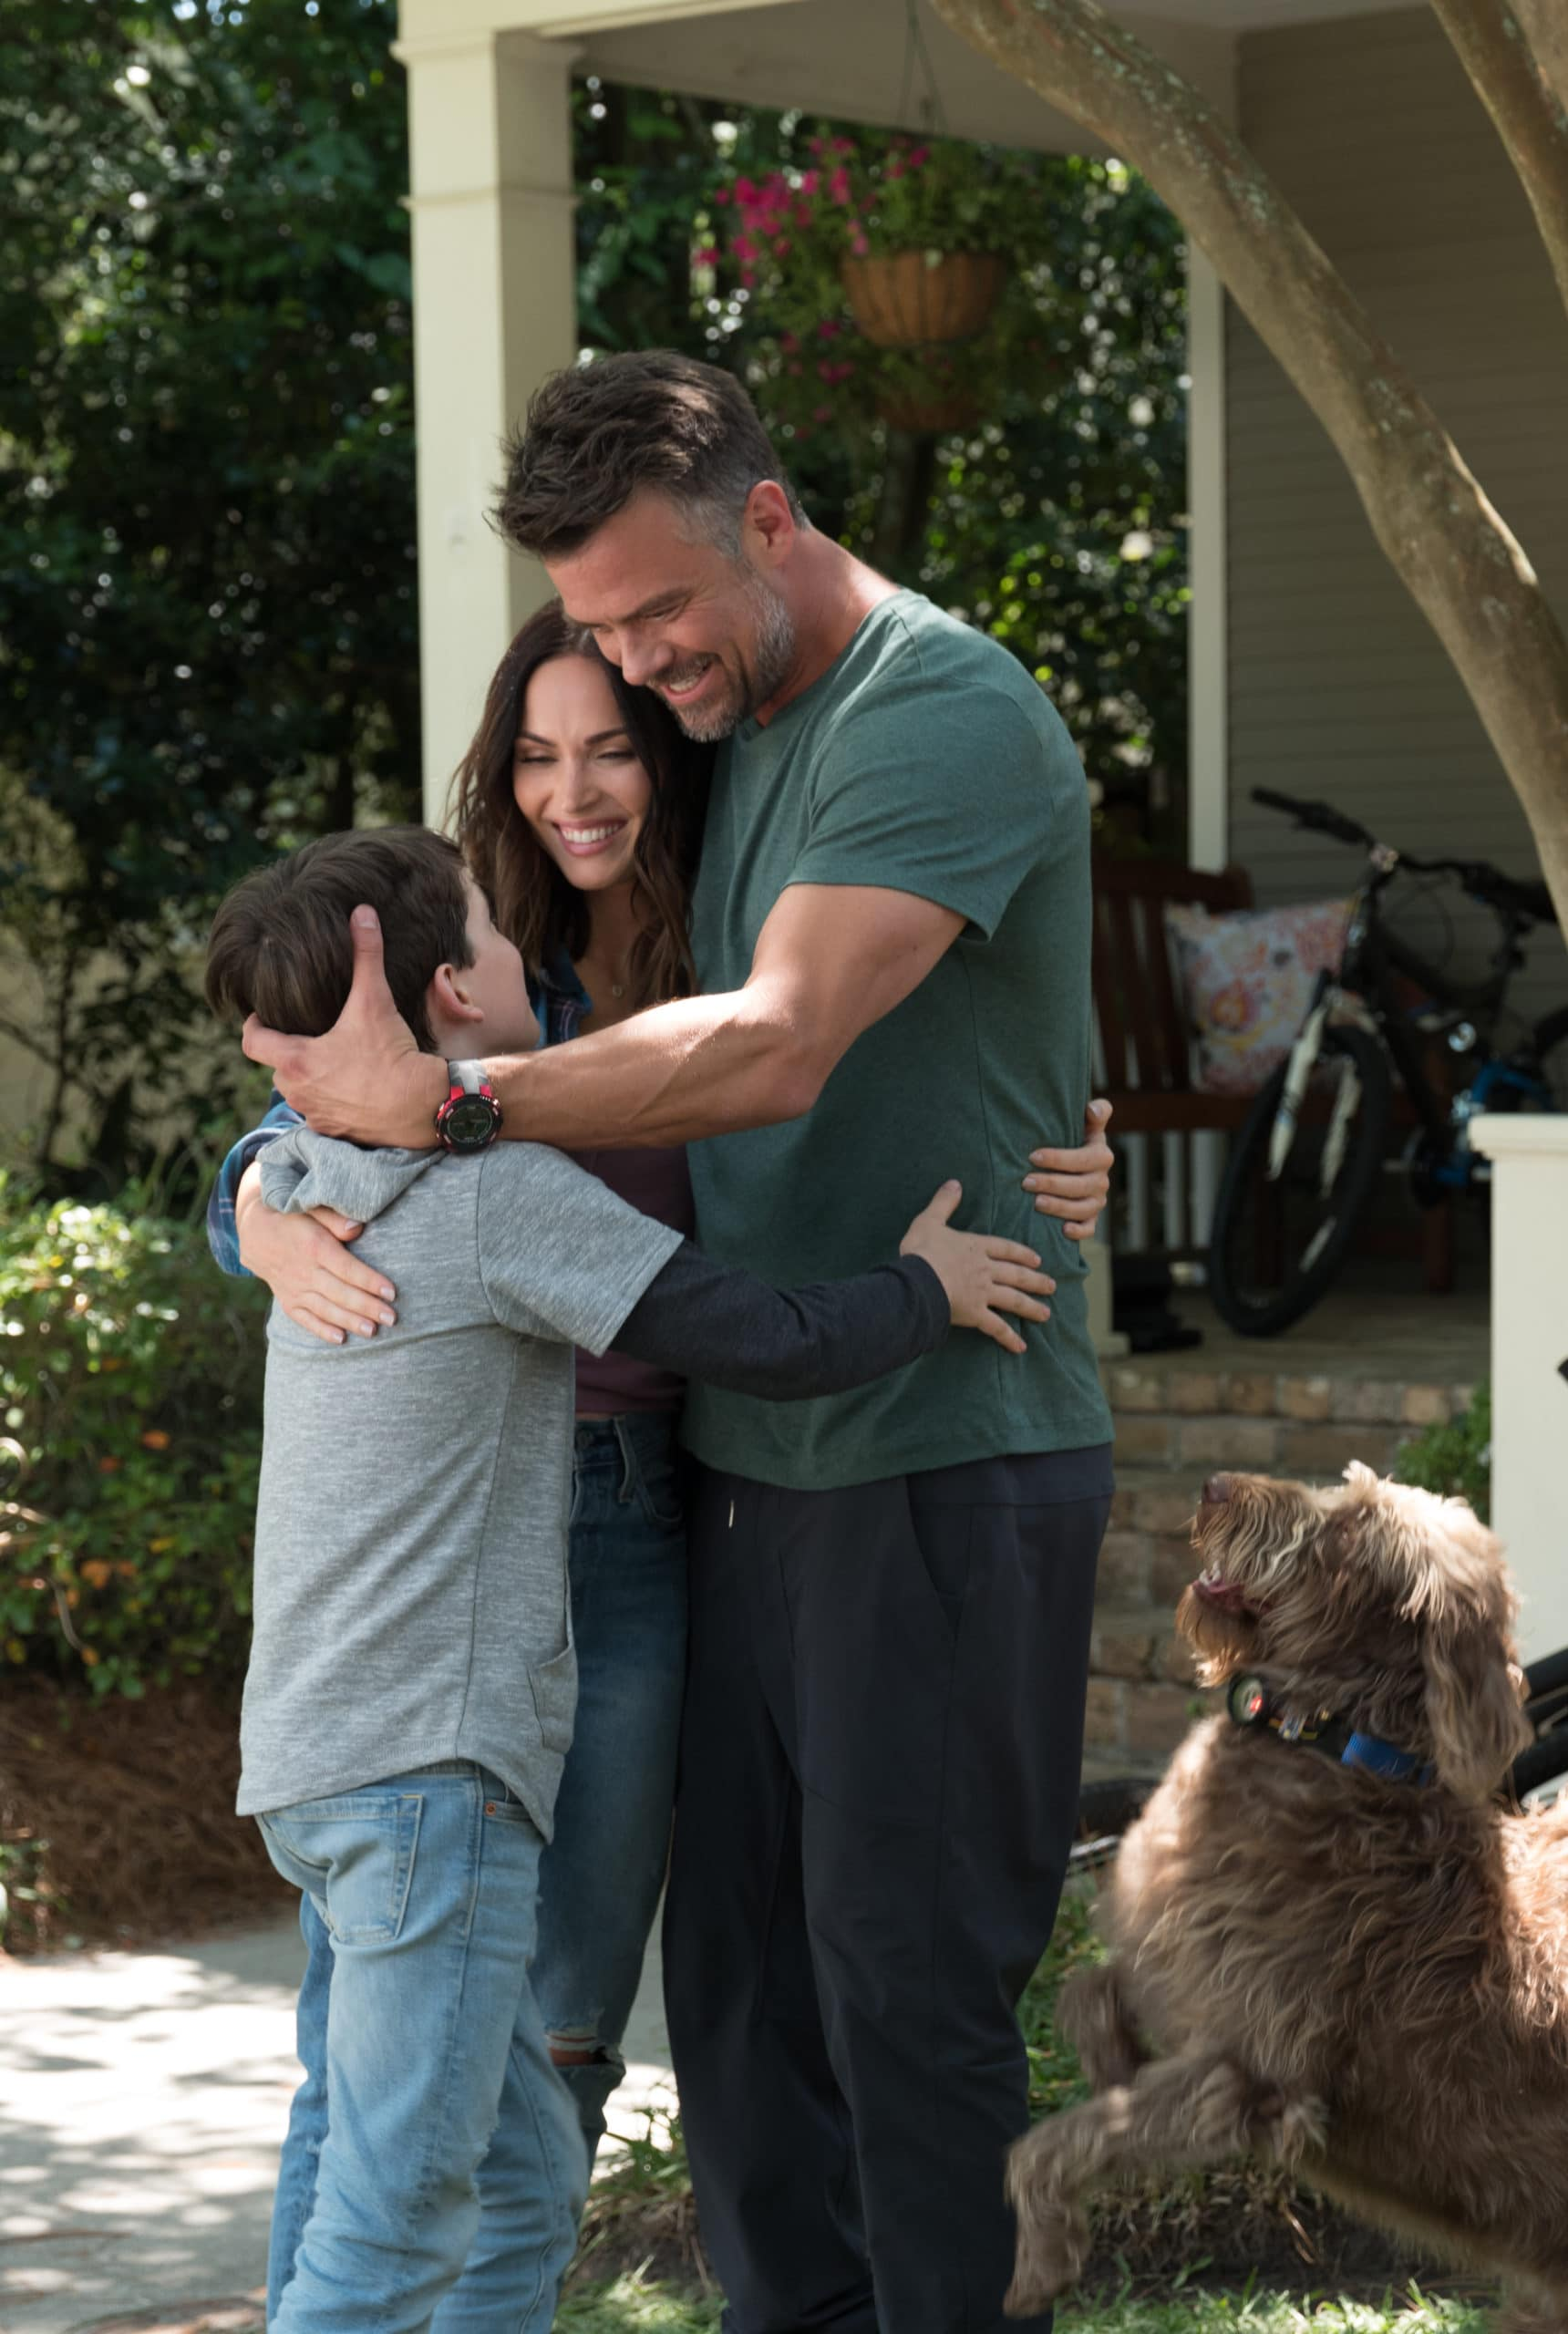 Think Like A Dog Family. It's time to give canines some love! Don't miss the paws-itively heartwarming family comedyThink Like a Dog, premiering on Digital, and On Demand June 9 from Lionsgate.